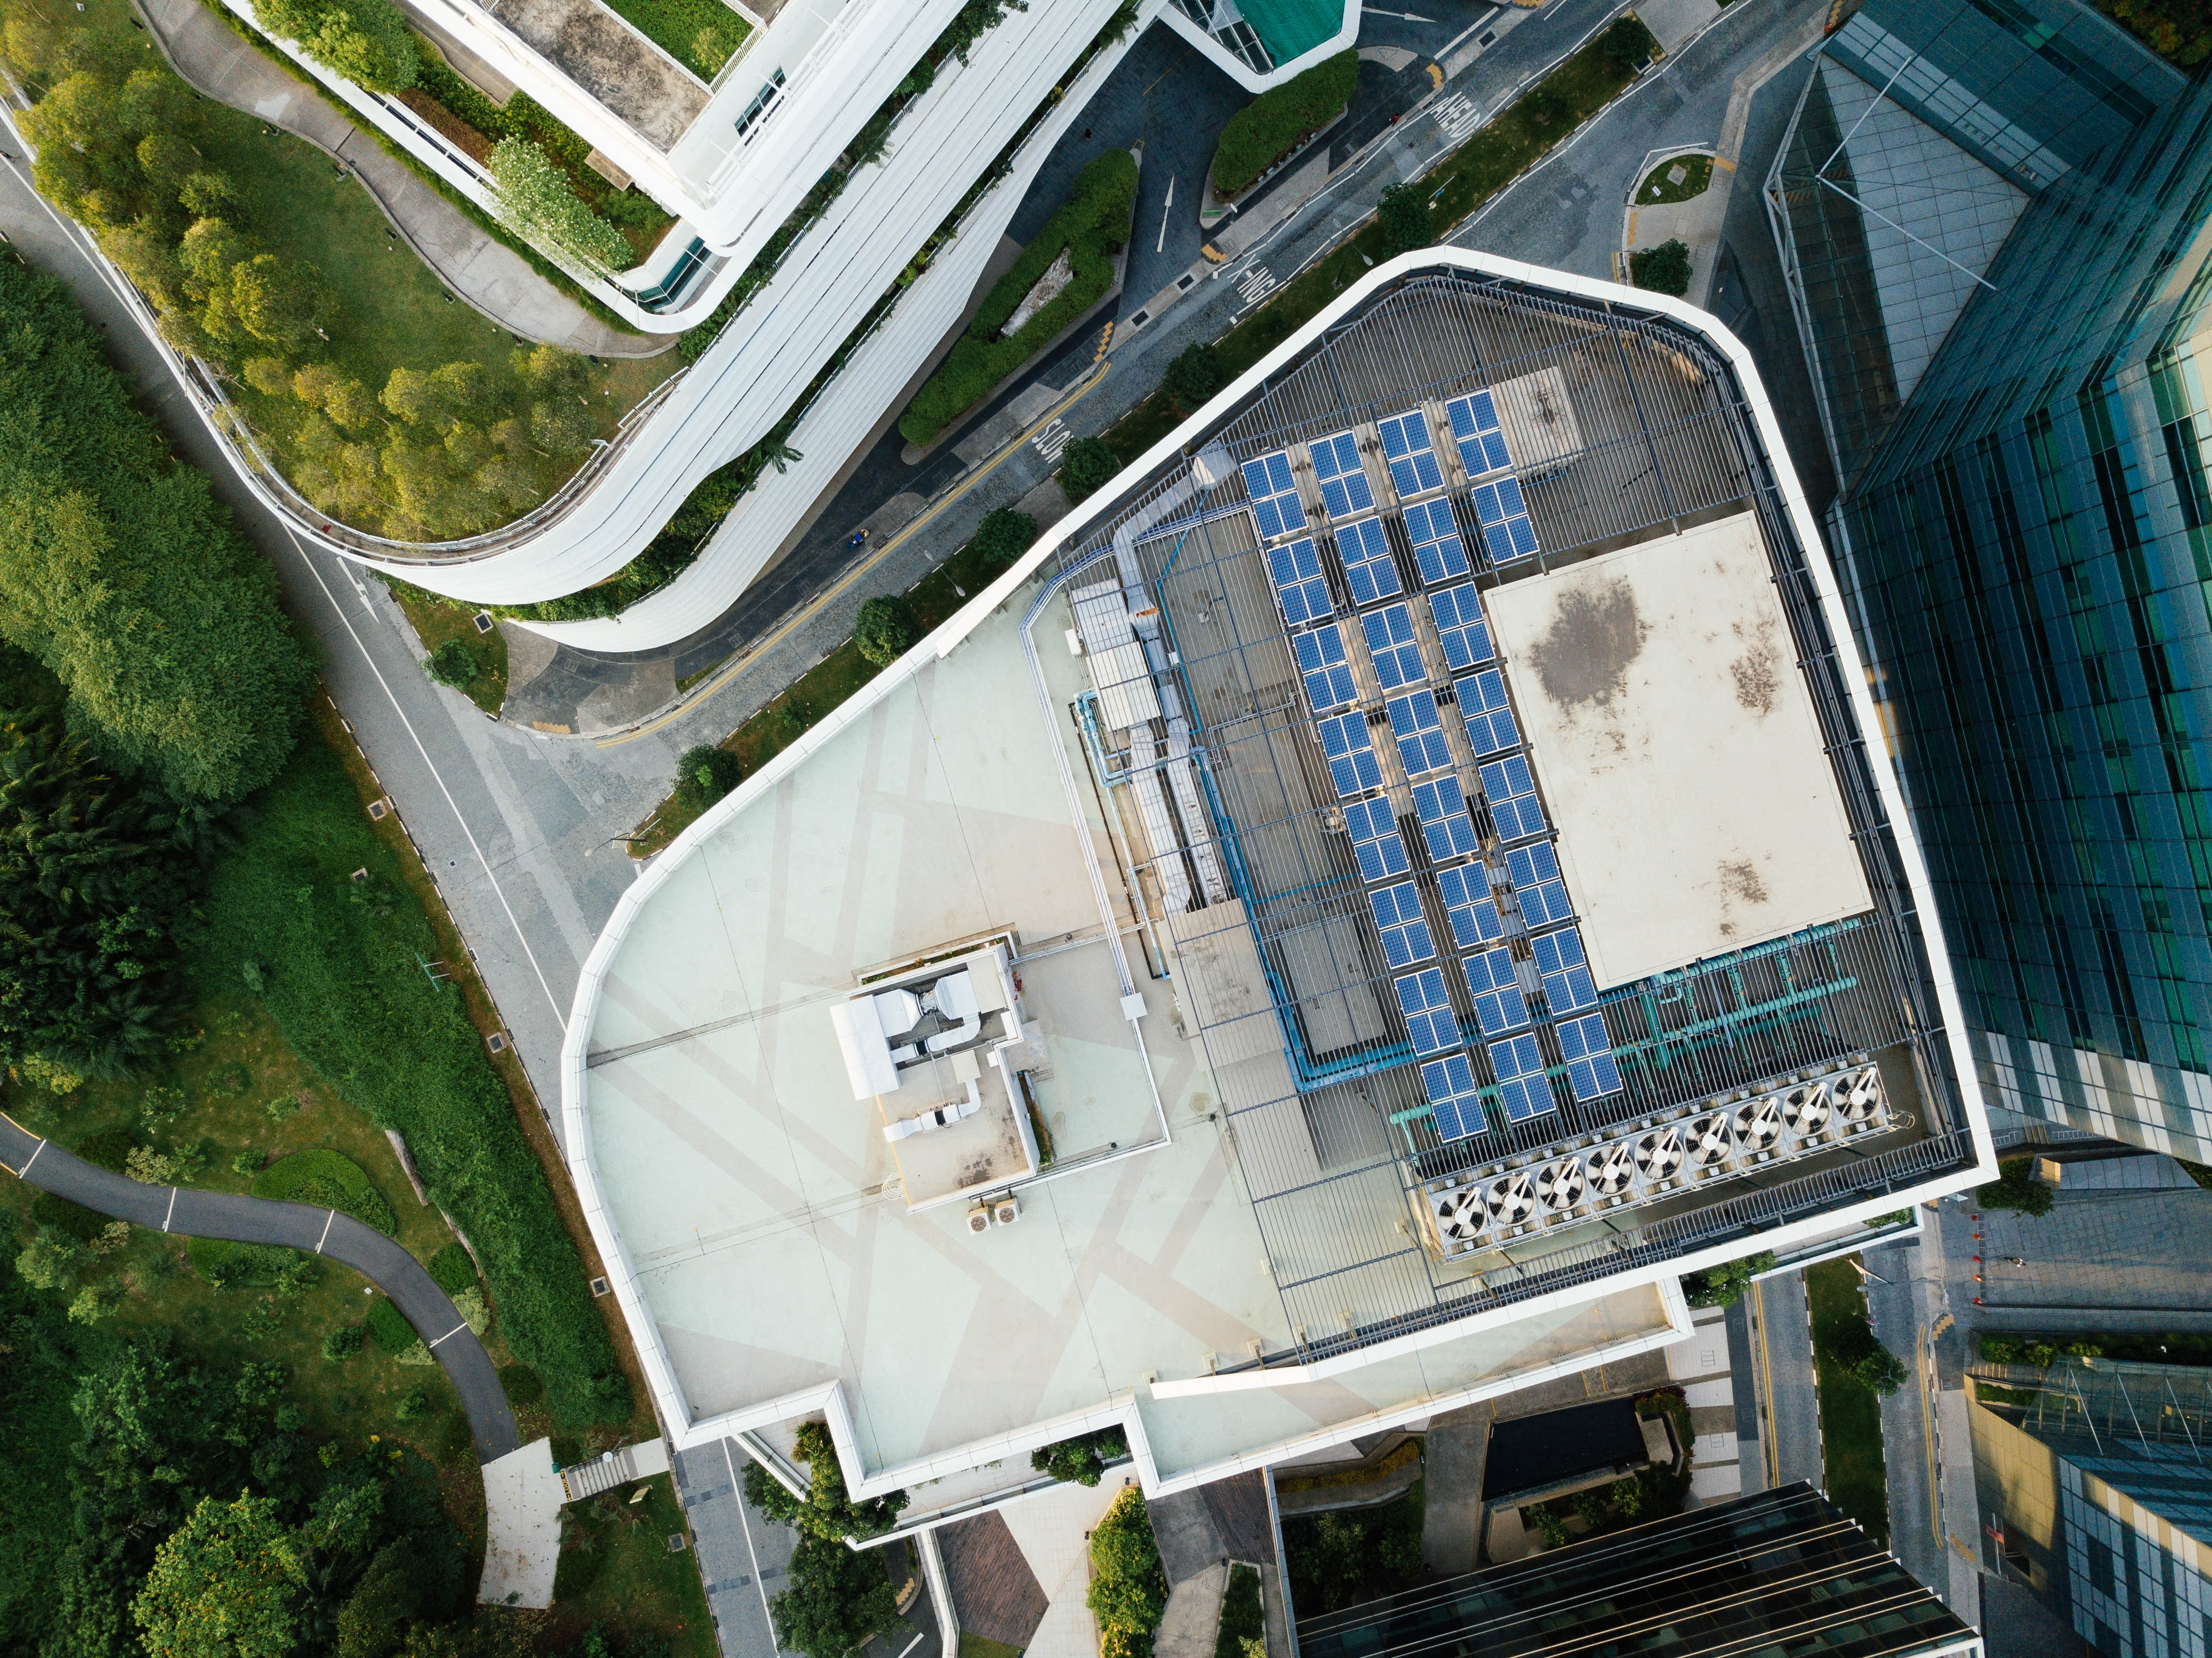 aerial photography of solar heater on building rooftop